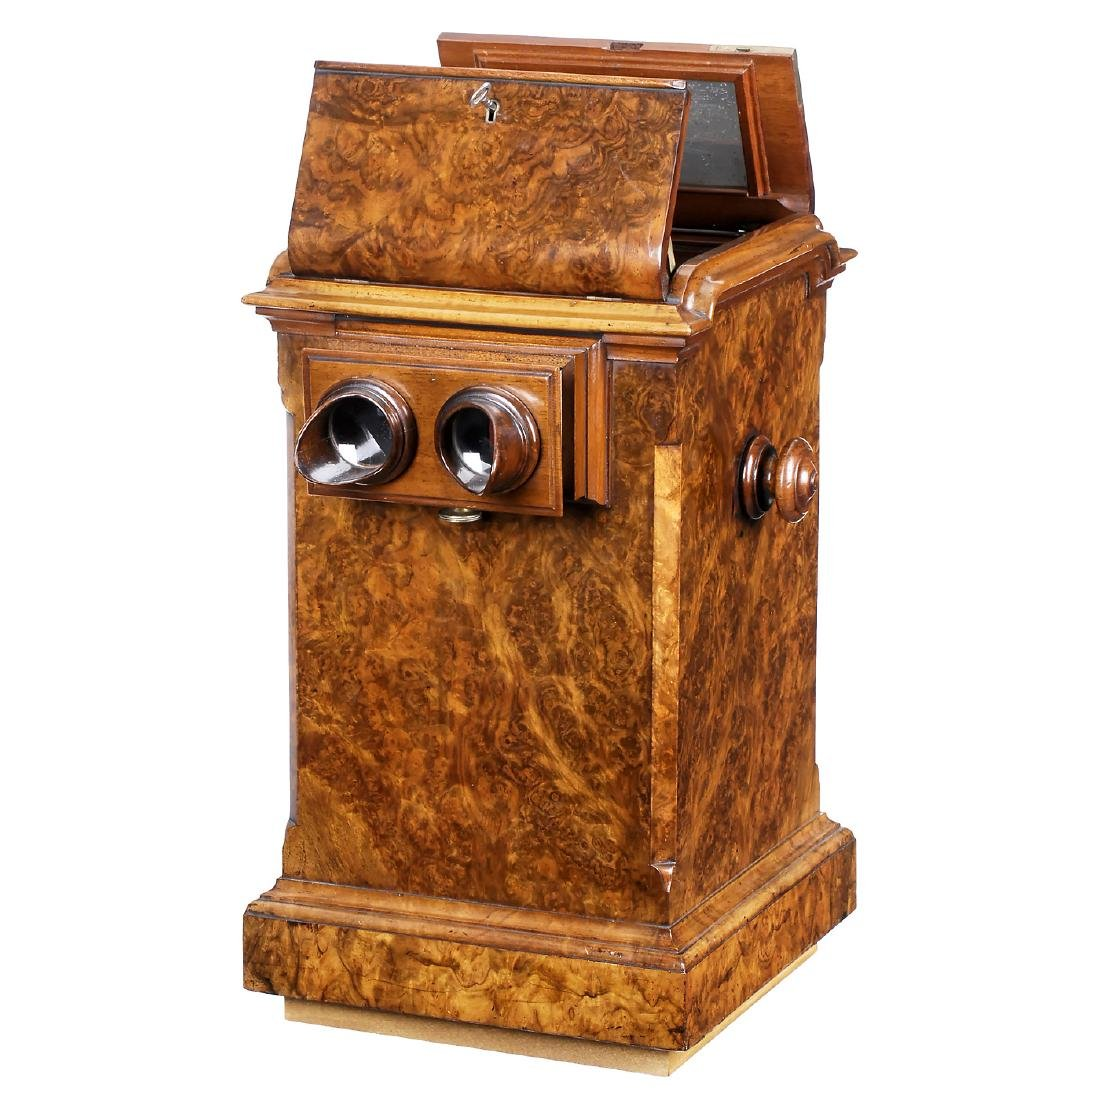 Luxury Table Stereo Viewer from England, c. 1870